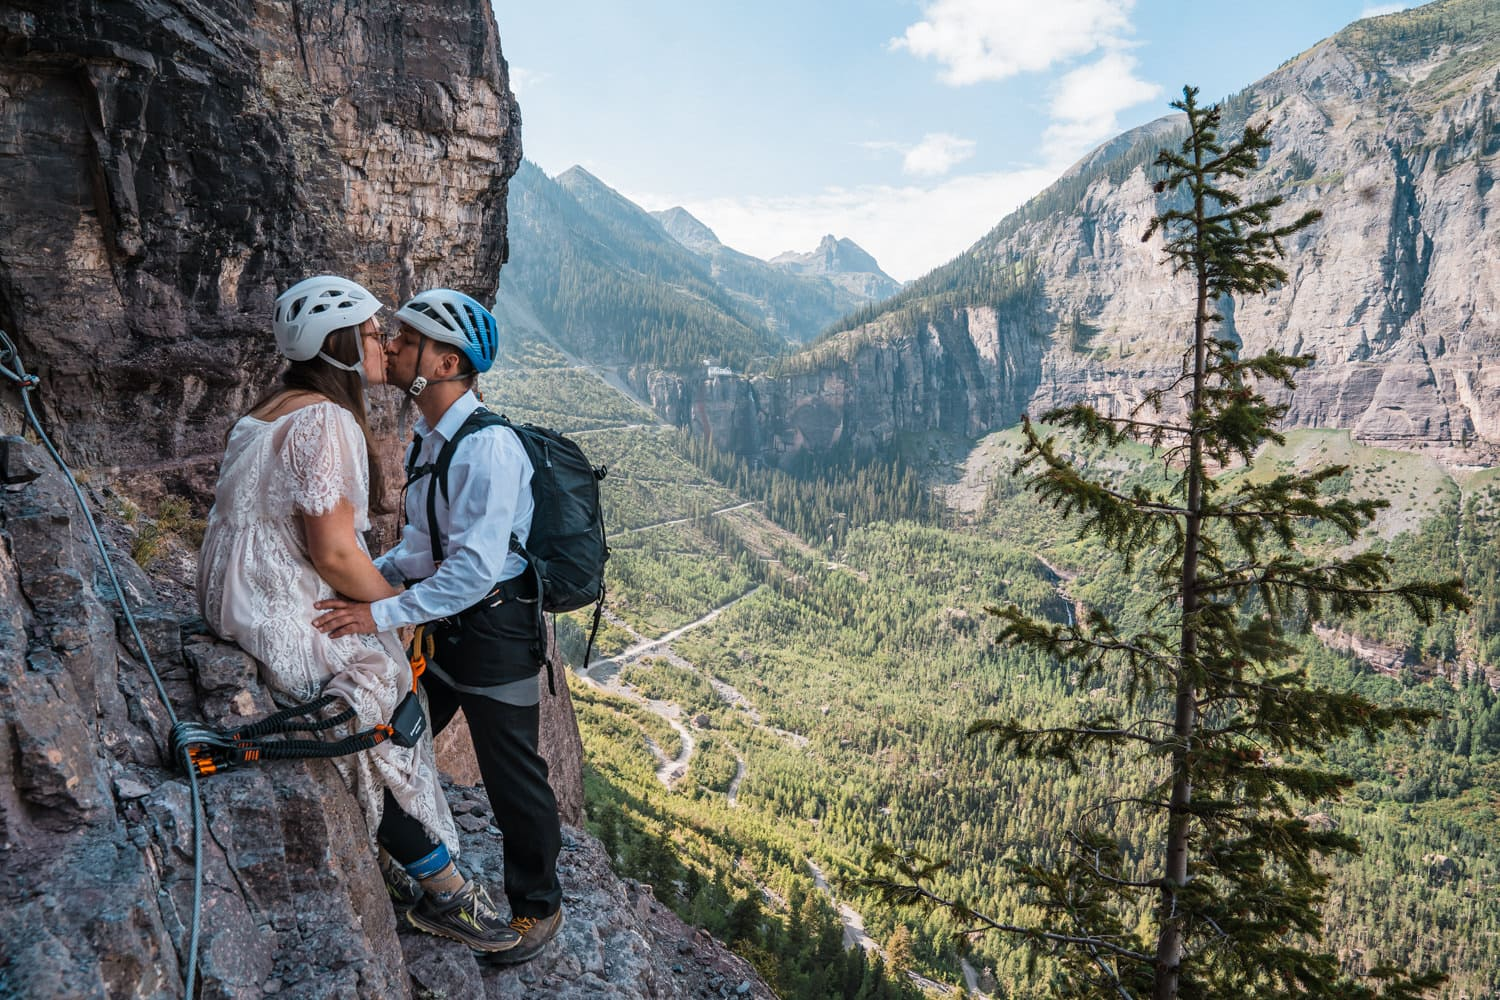 Bride and Groom Climbing Colorado Mountain Elopement Packages